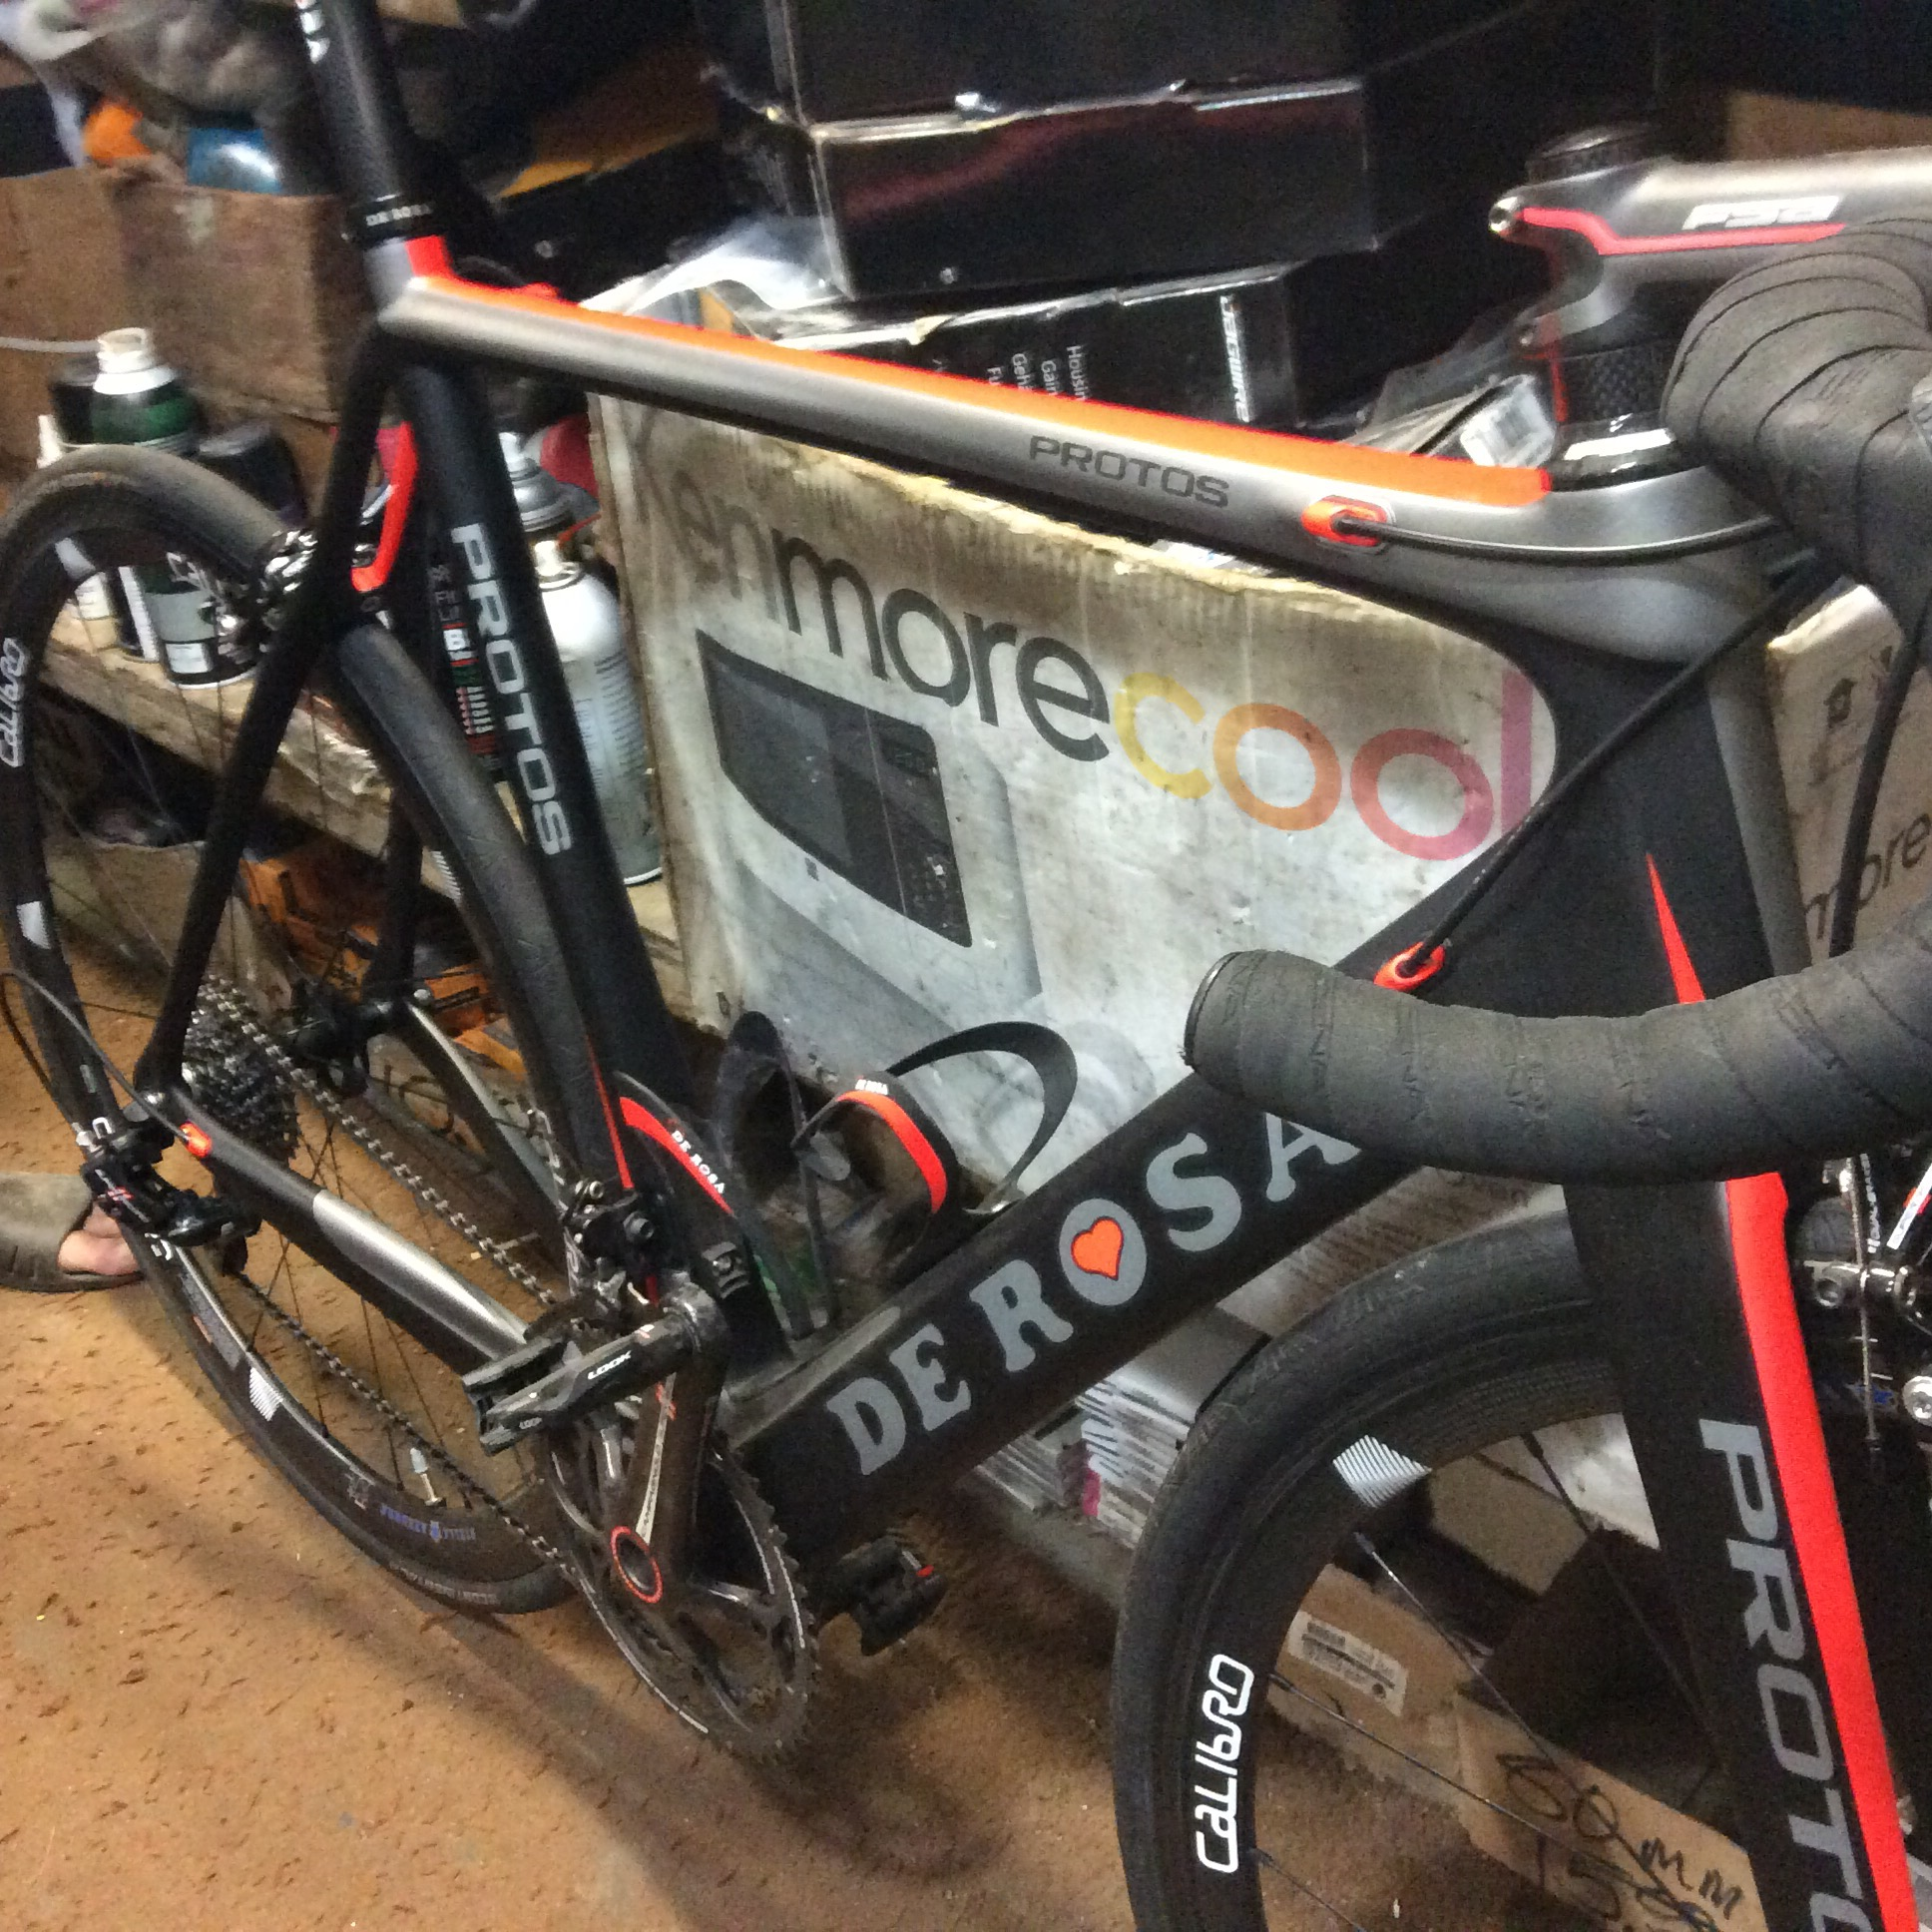 Mike especially loves this De Rosa with full Campy. The downtube is even more massive looking in person.